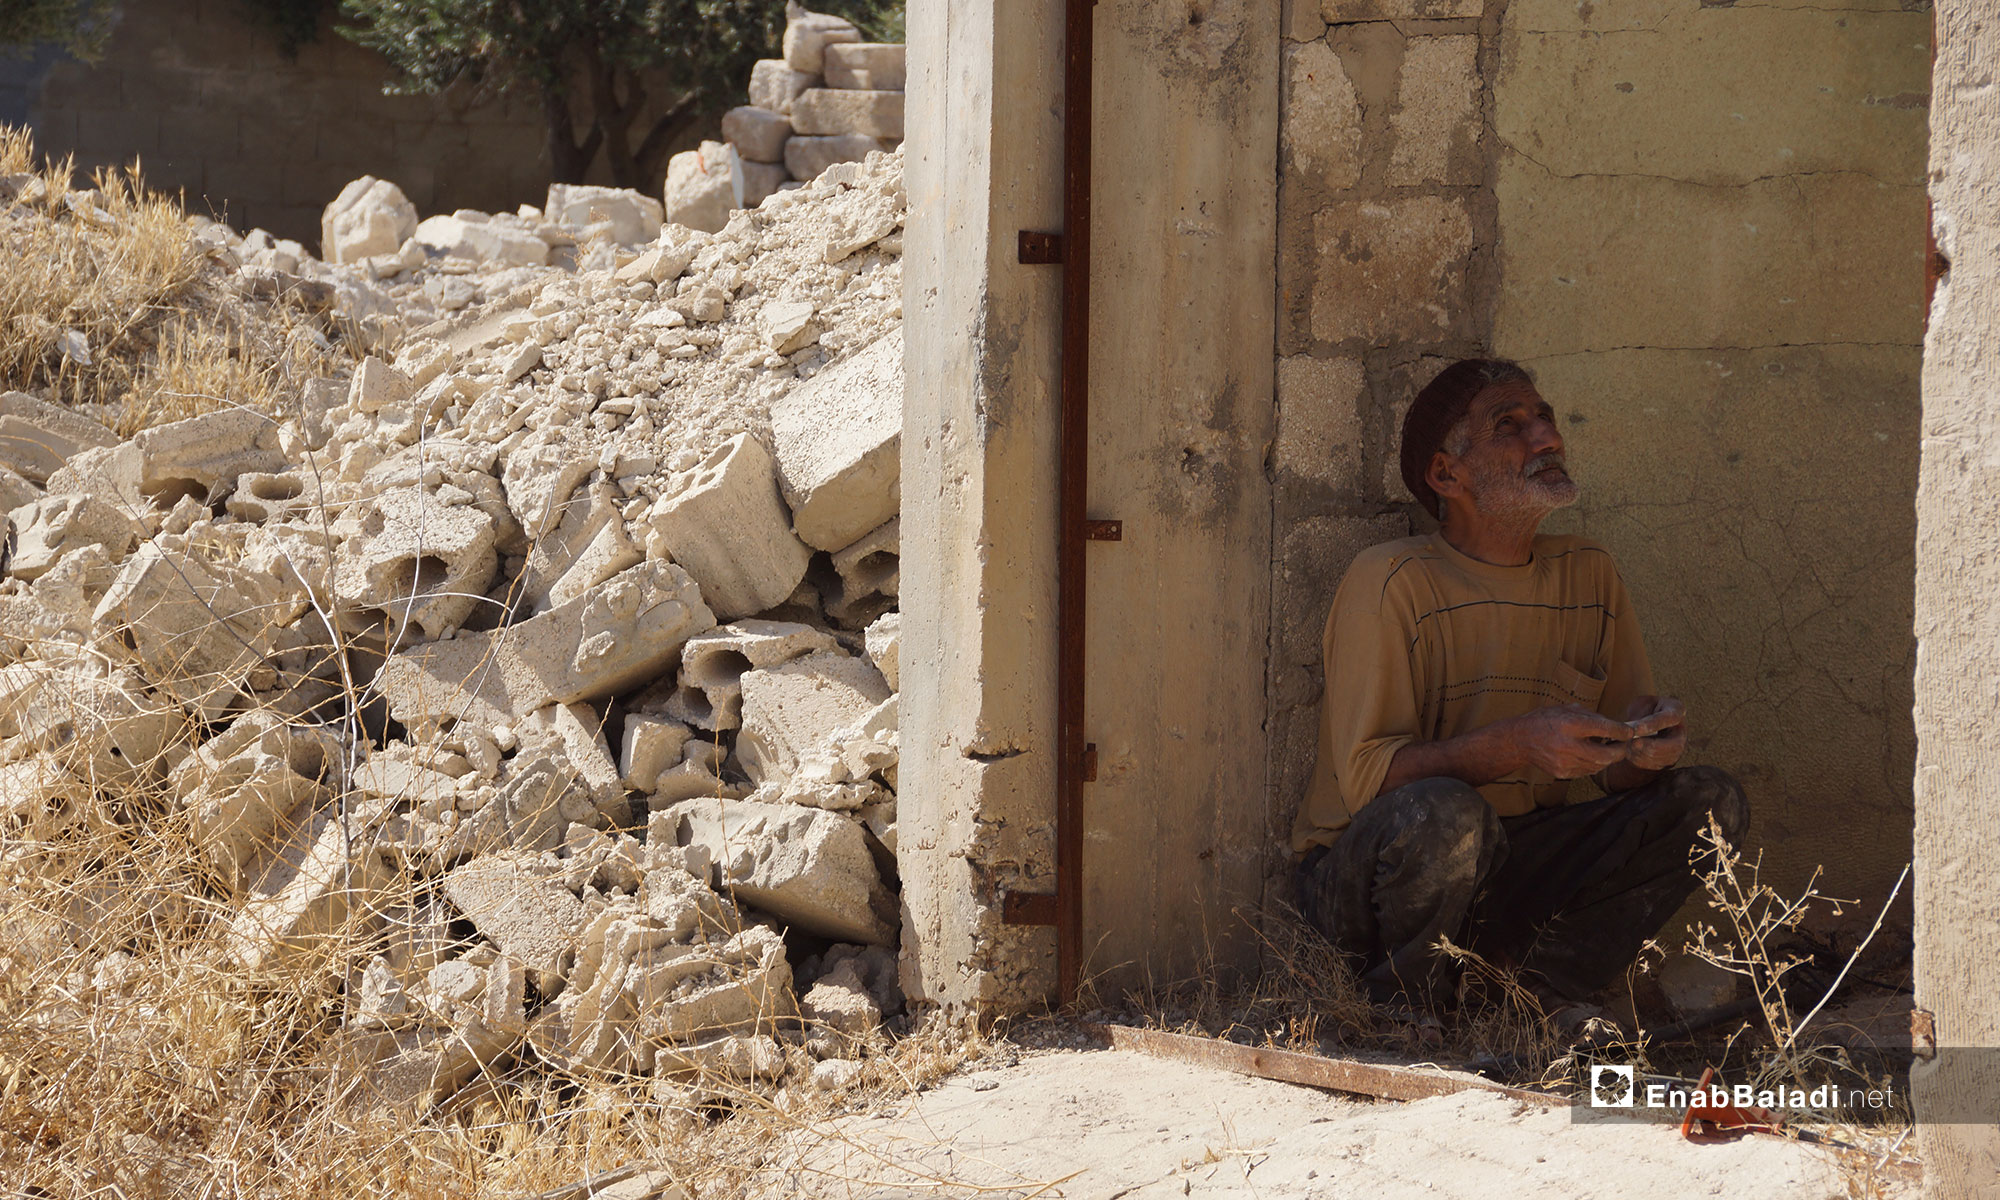 The return of the Al-Lataminah Village's people to their area and the restoration of houses, northern rural Aleppo – September 25, 2018 (Enab Baladi)